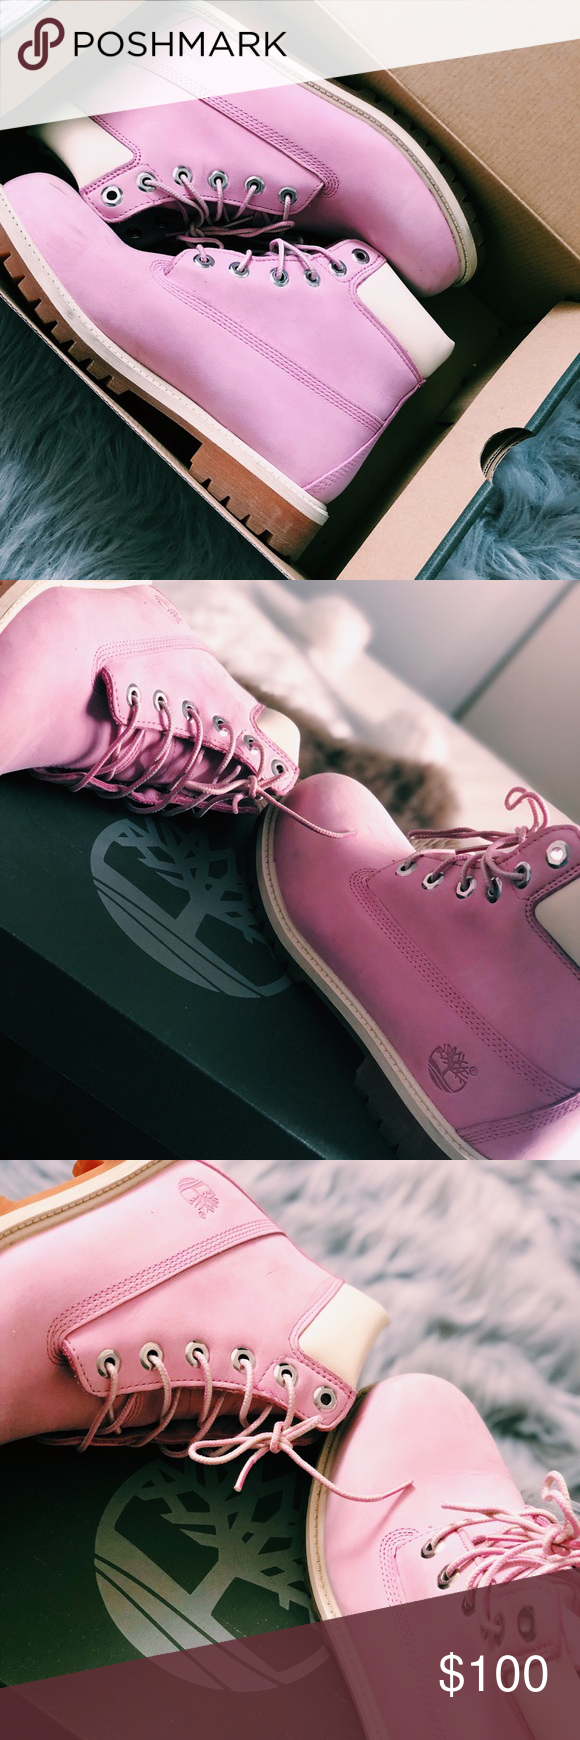 991f874fc94b3 Bubble gum pink authentic timberland boots Journeys exclusive pink  timberlands limited edition boots. Only worn once. Timberland Shoes Winter  & Rain Boots